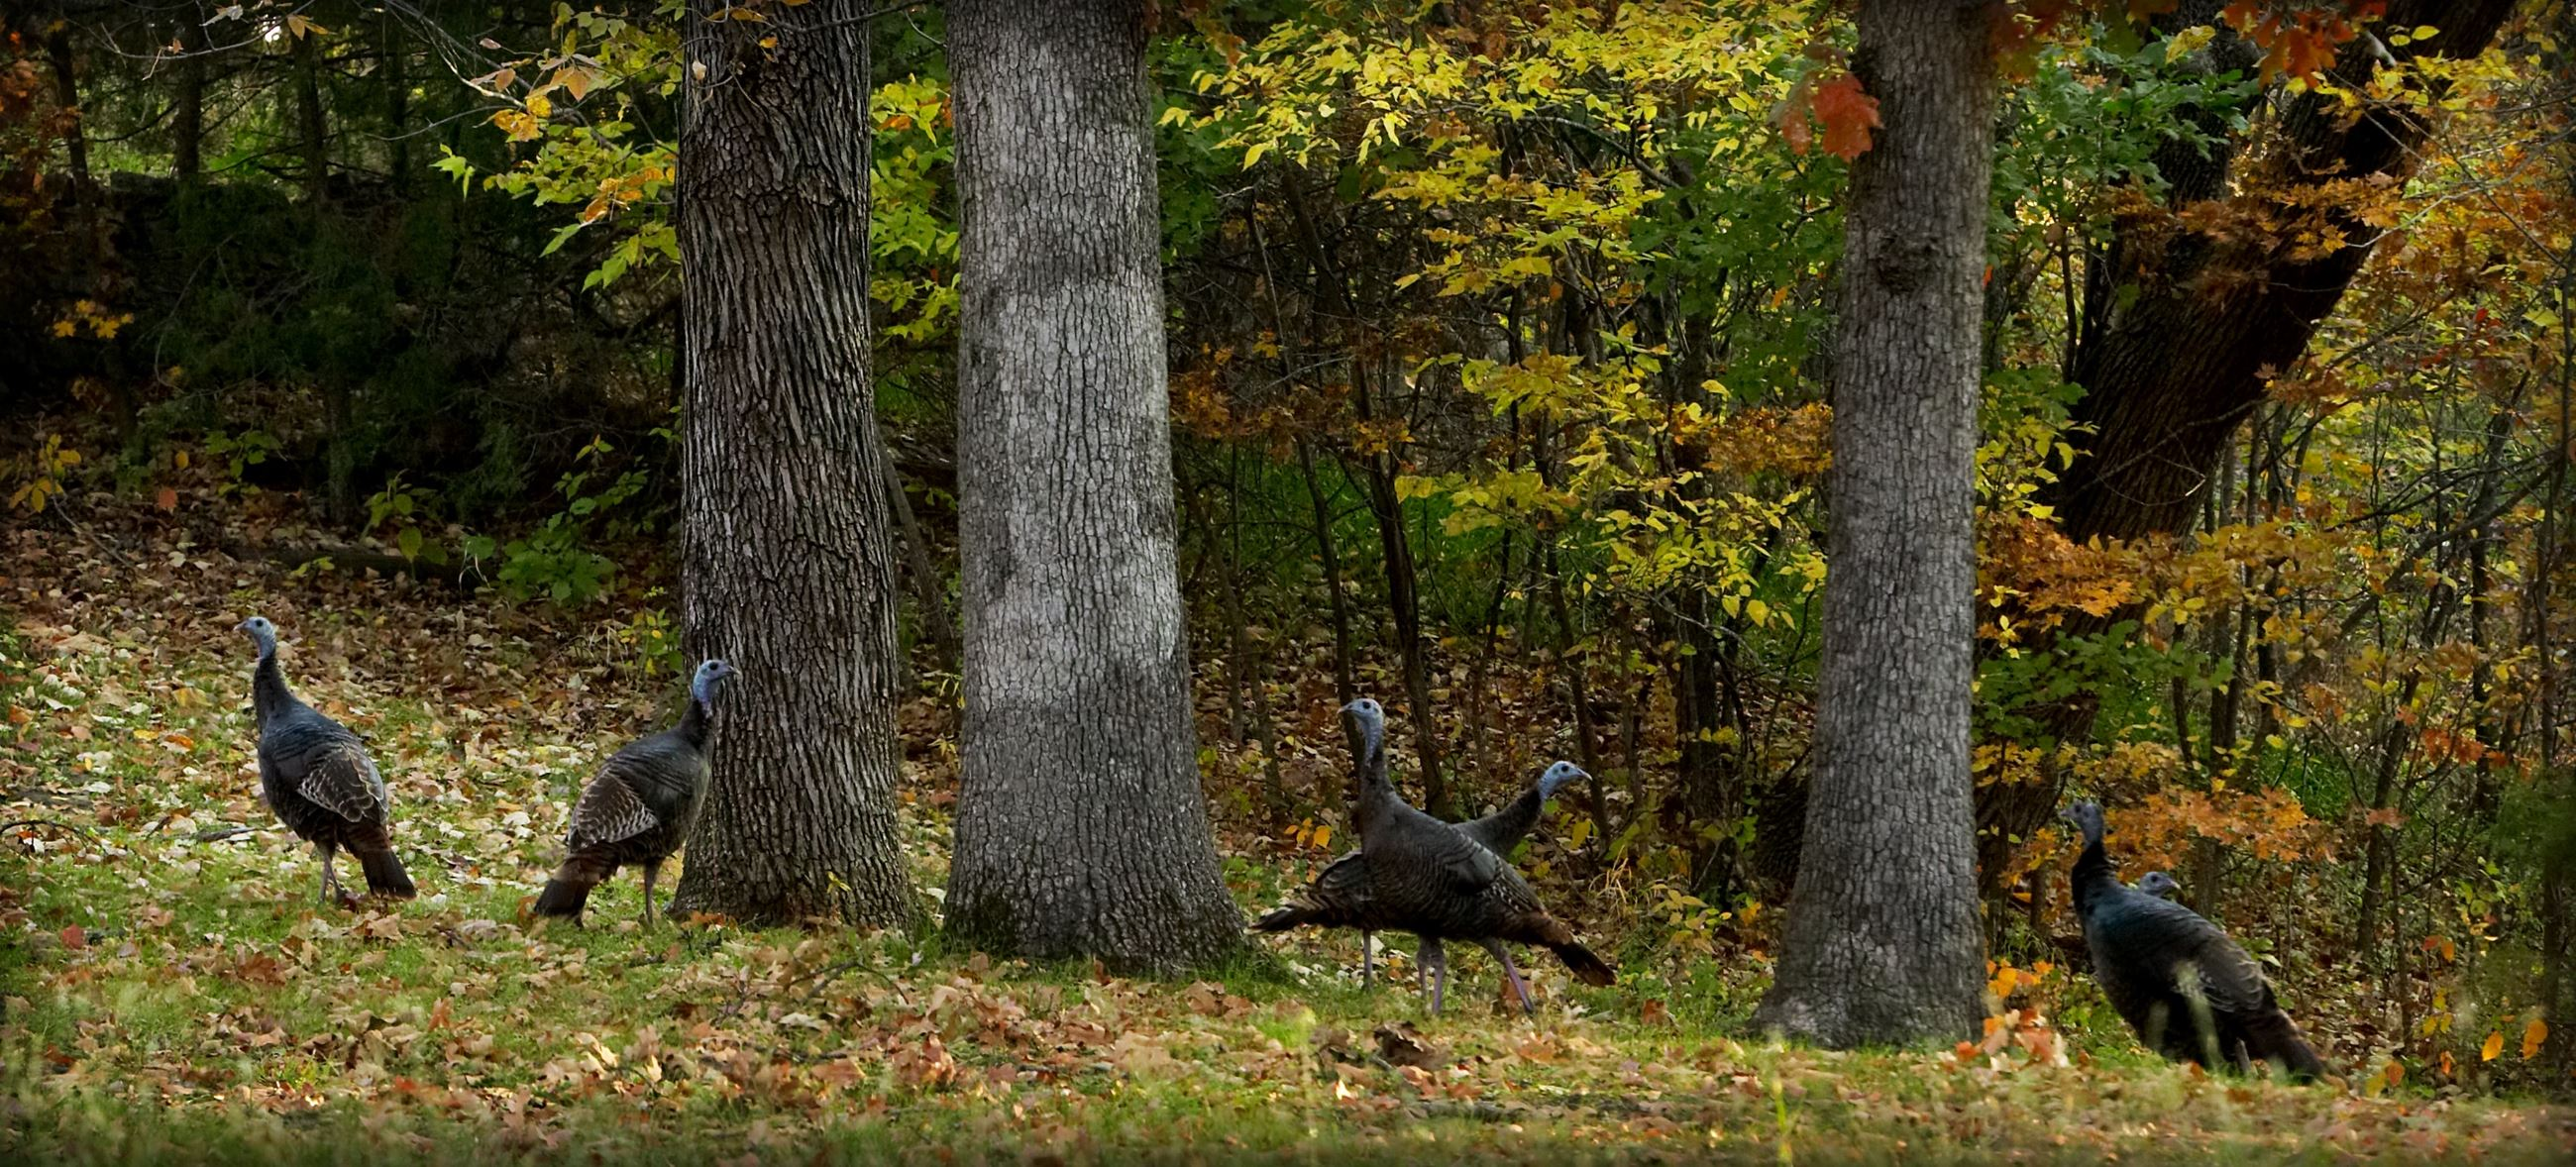 Turkeys in Gunn Park